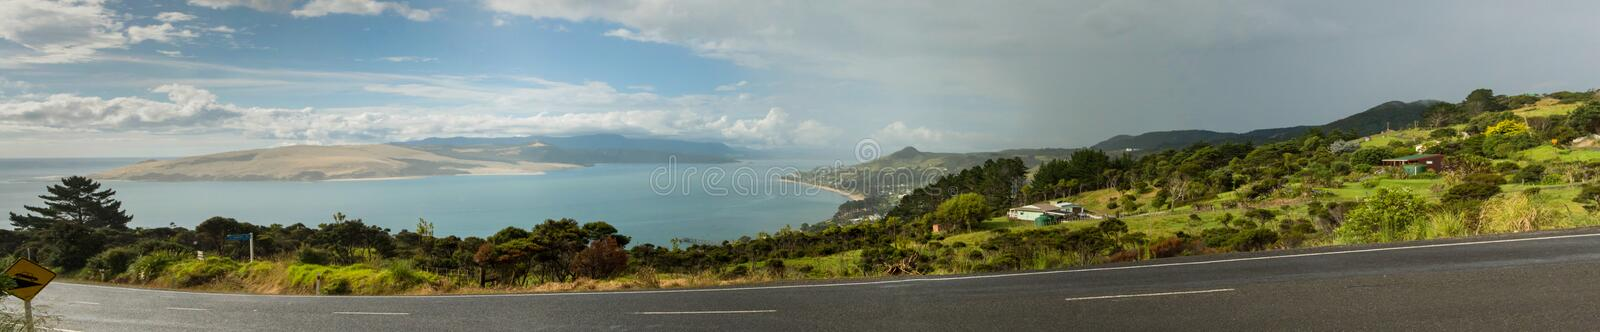 New zealand kaipara panorma landscape. North island royalty free stock image